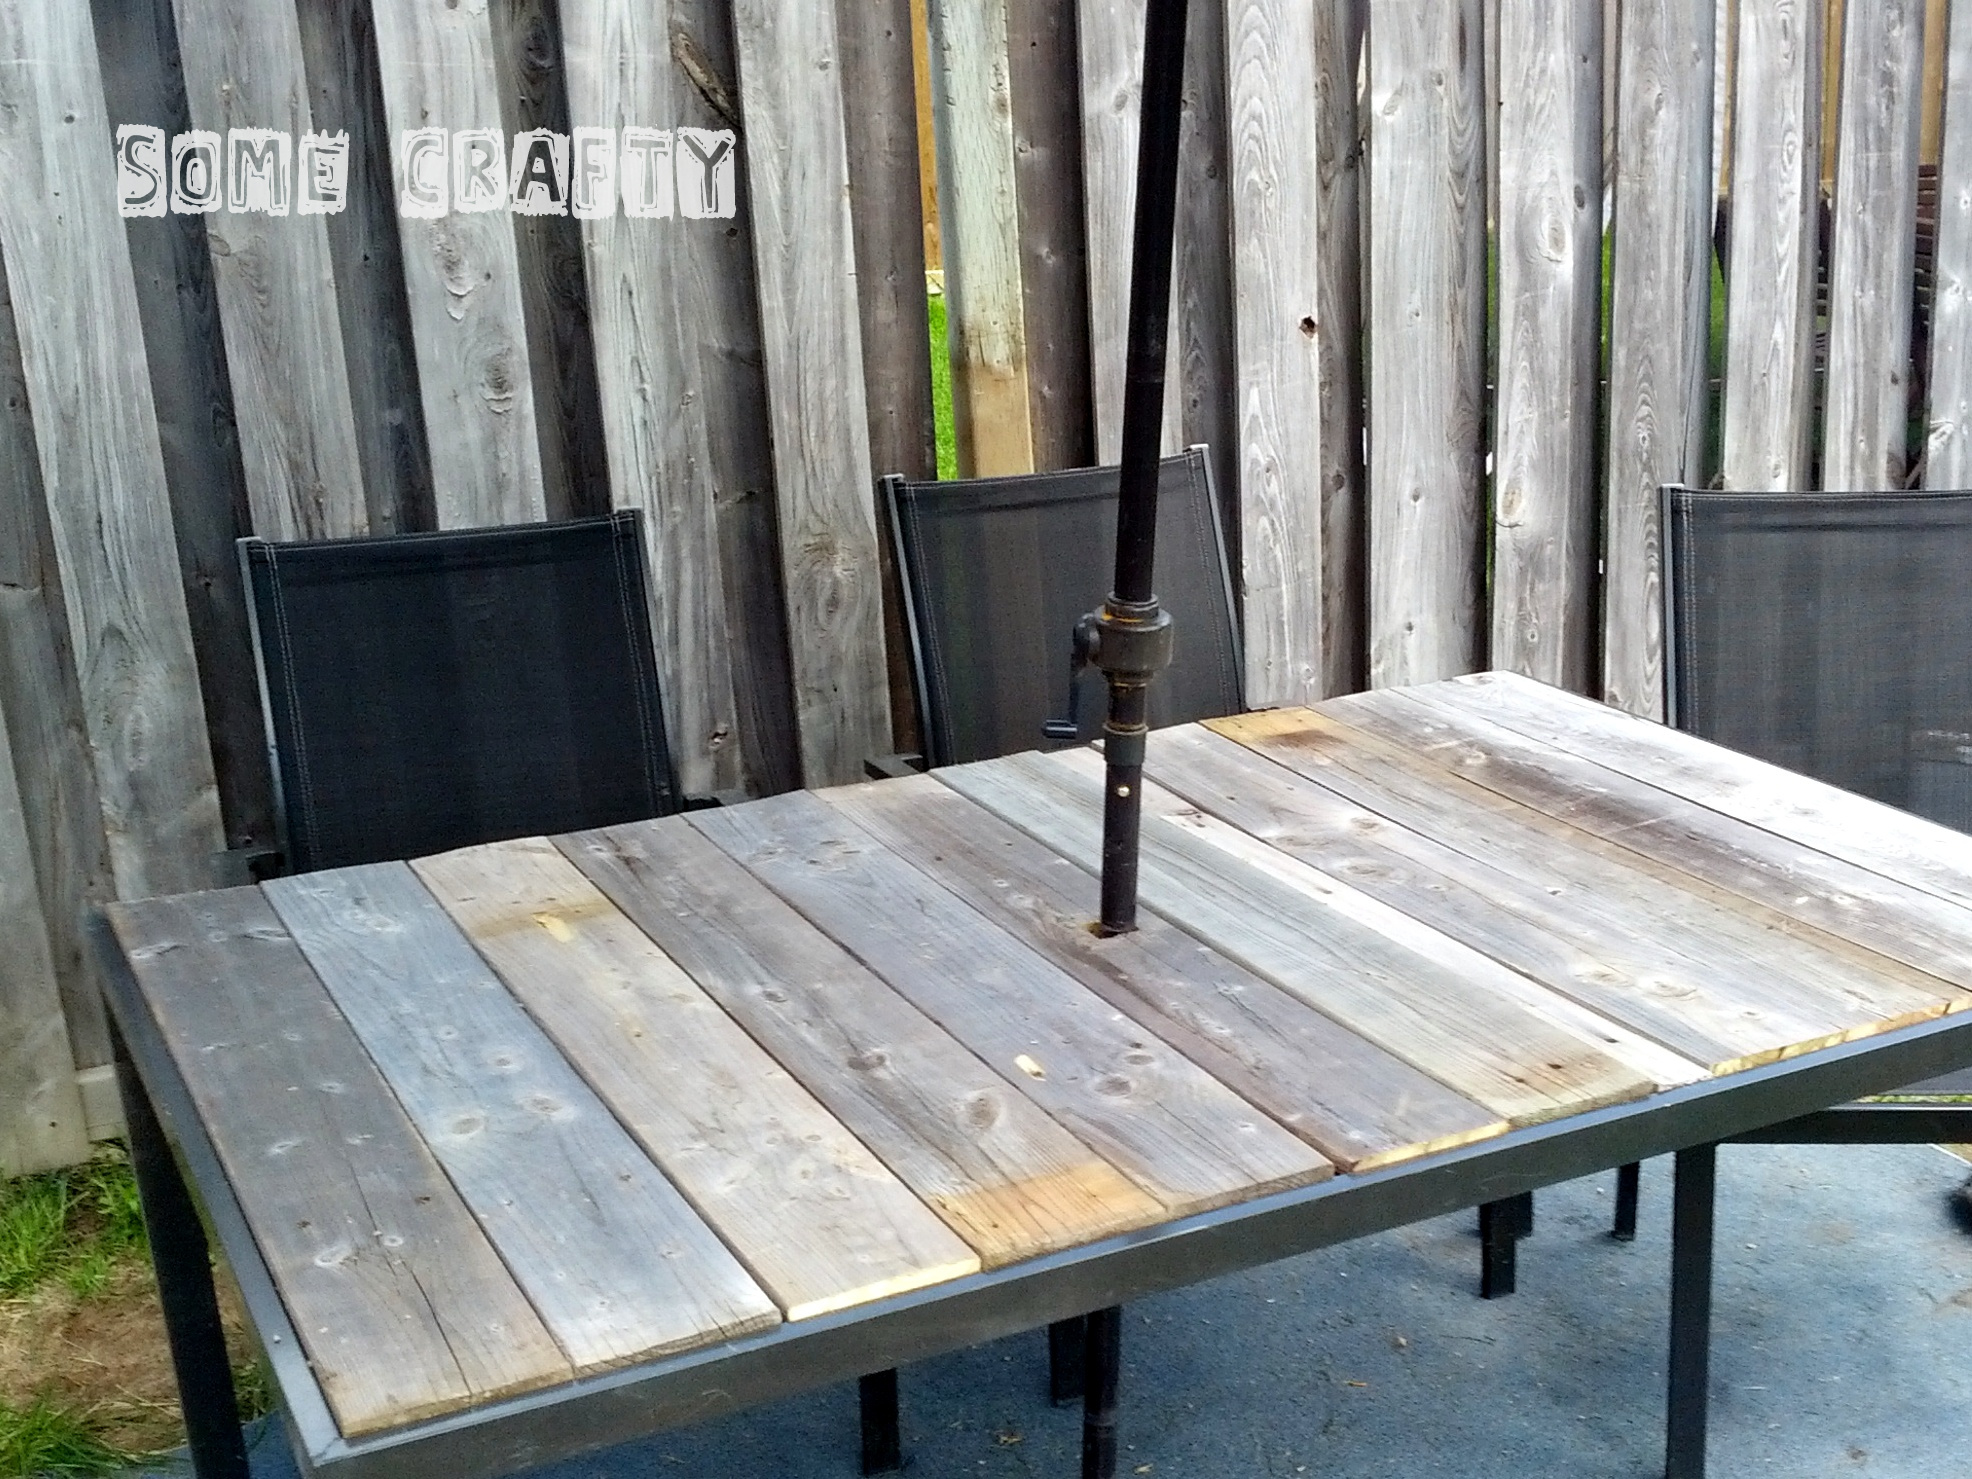 Shabby Chic Farmhouse Style Outdoor Table | SomeCrafty